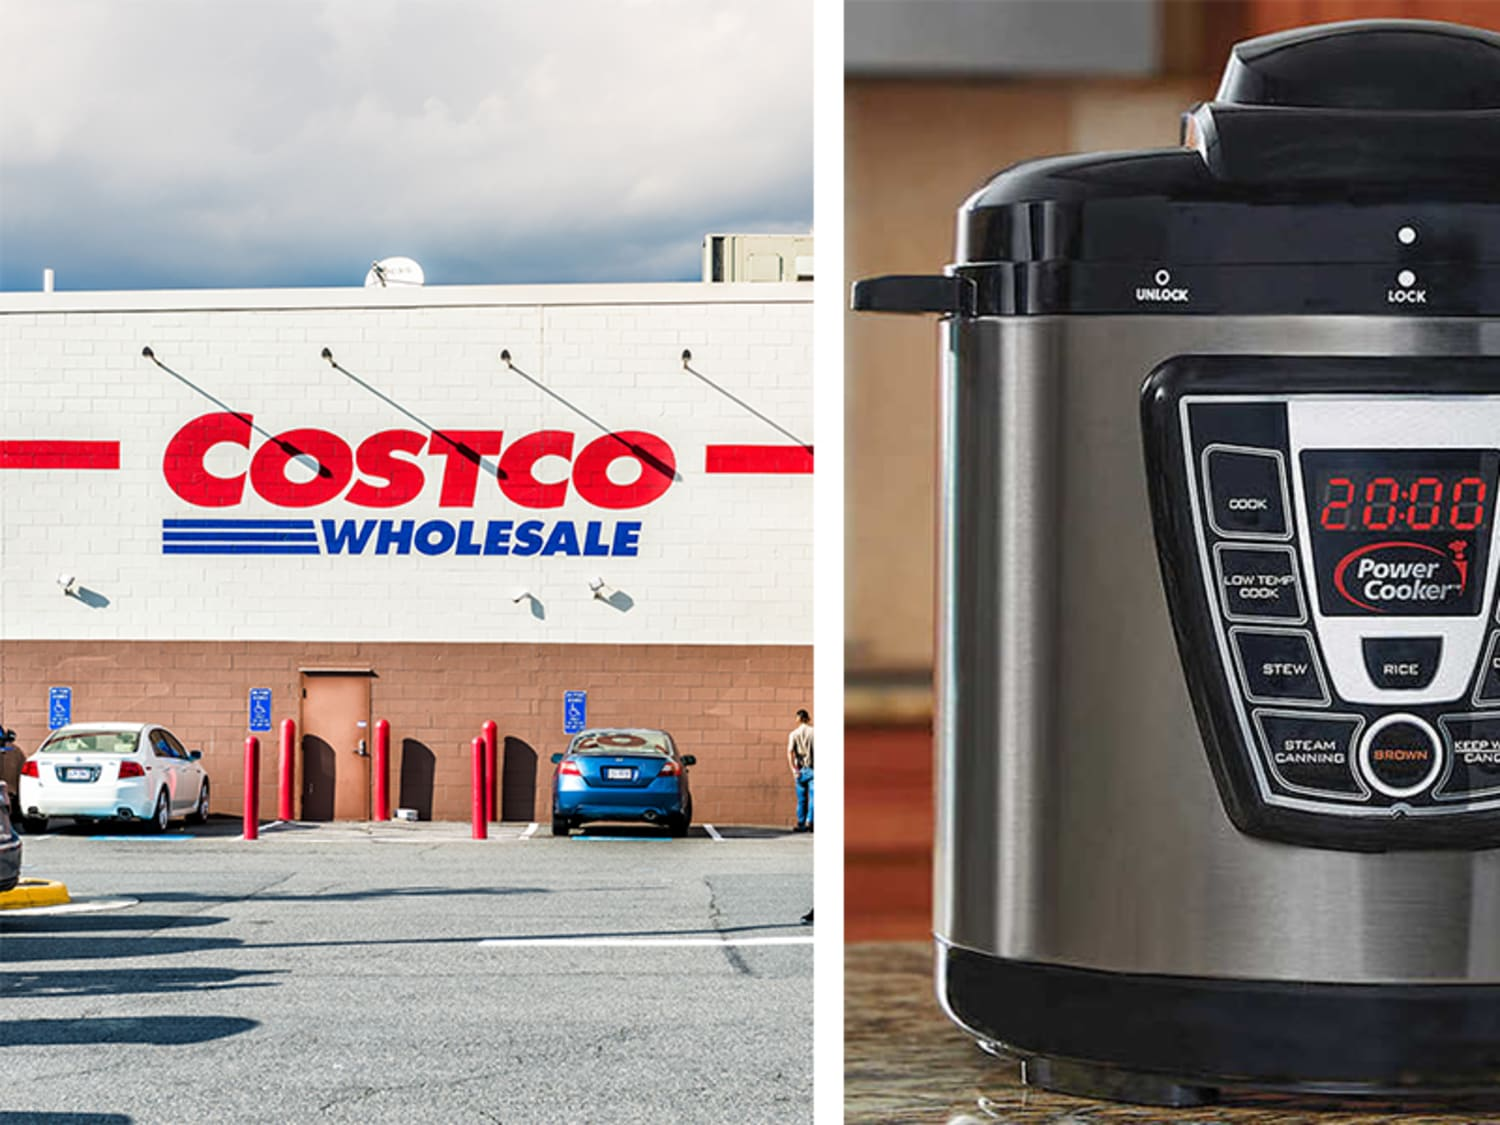 Costco S Instant Pot Competitor Is Only 40 Right Now Kitchn Slickdeals forums deal talk costco members: costco s instant pot competitor is only